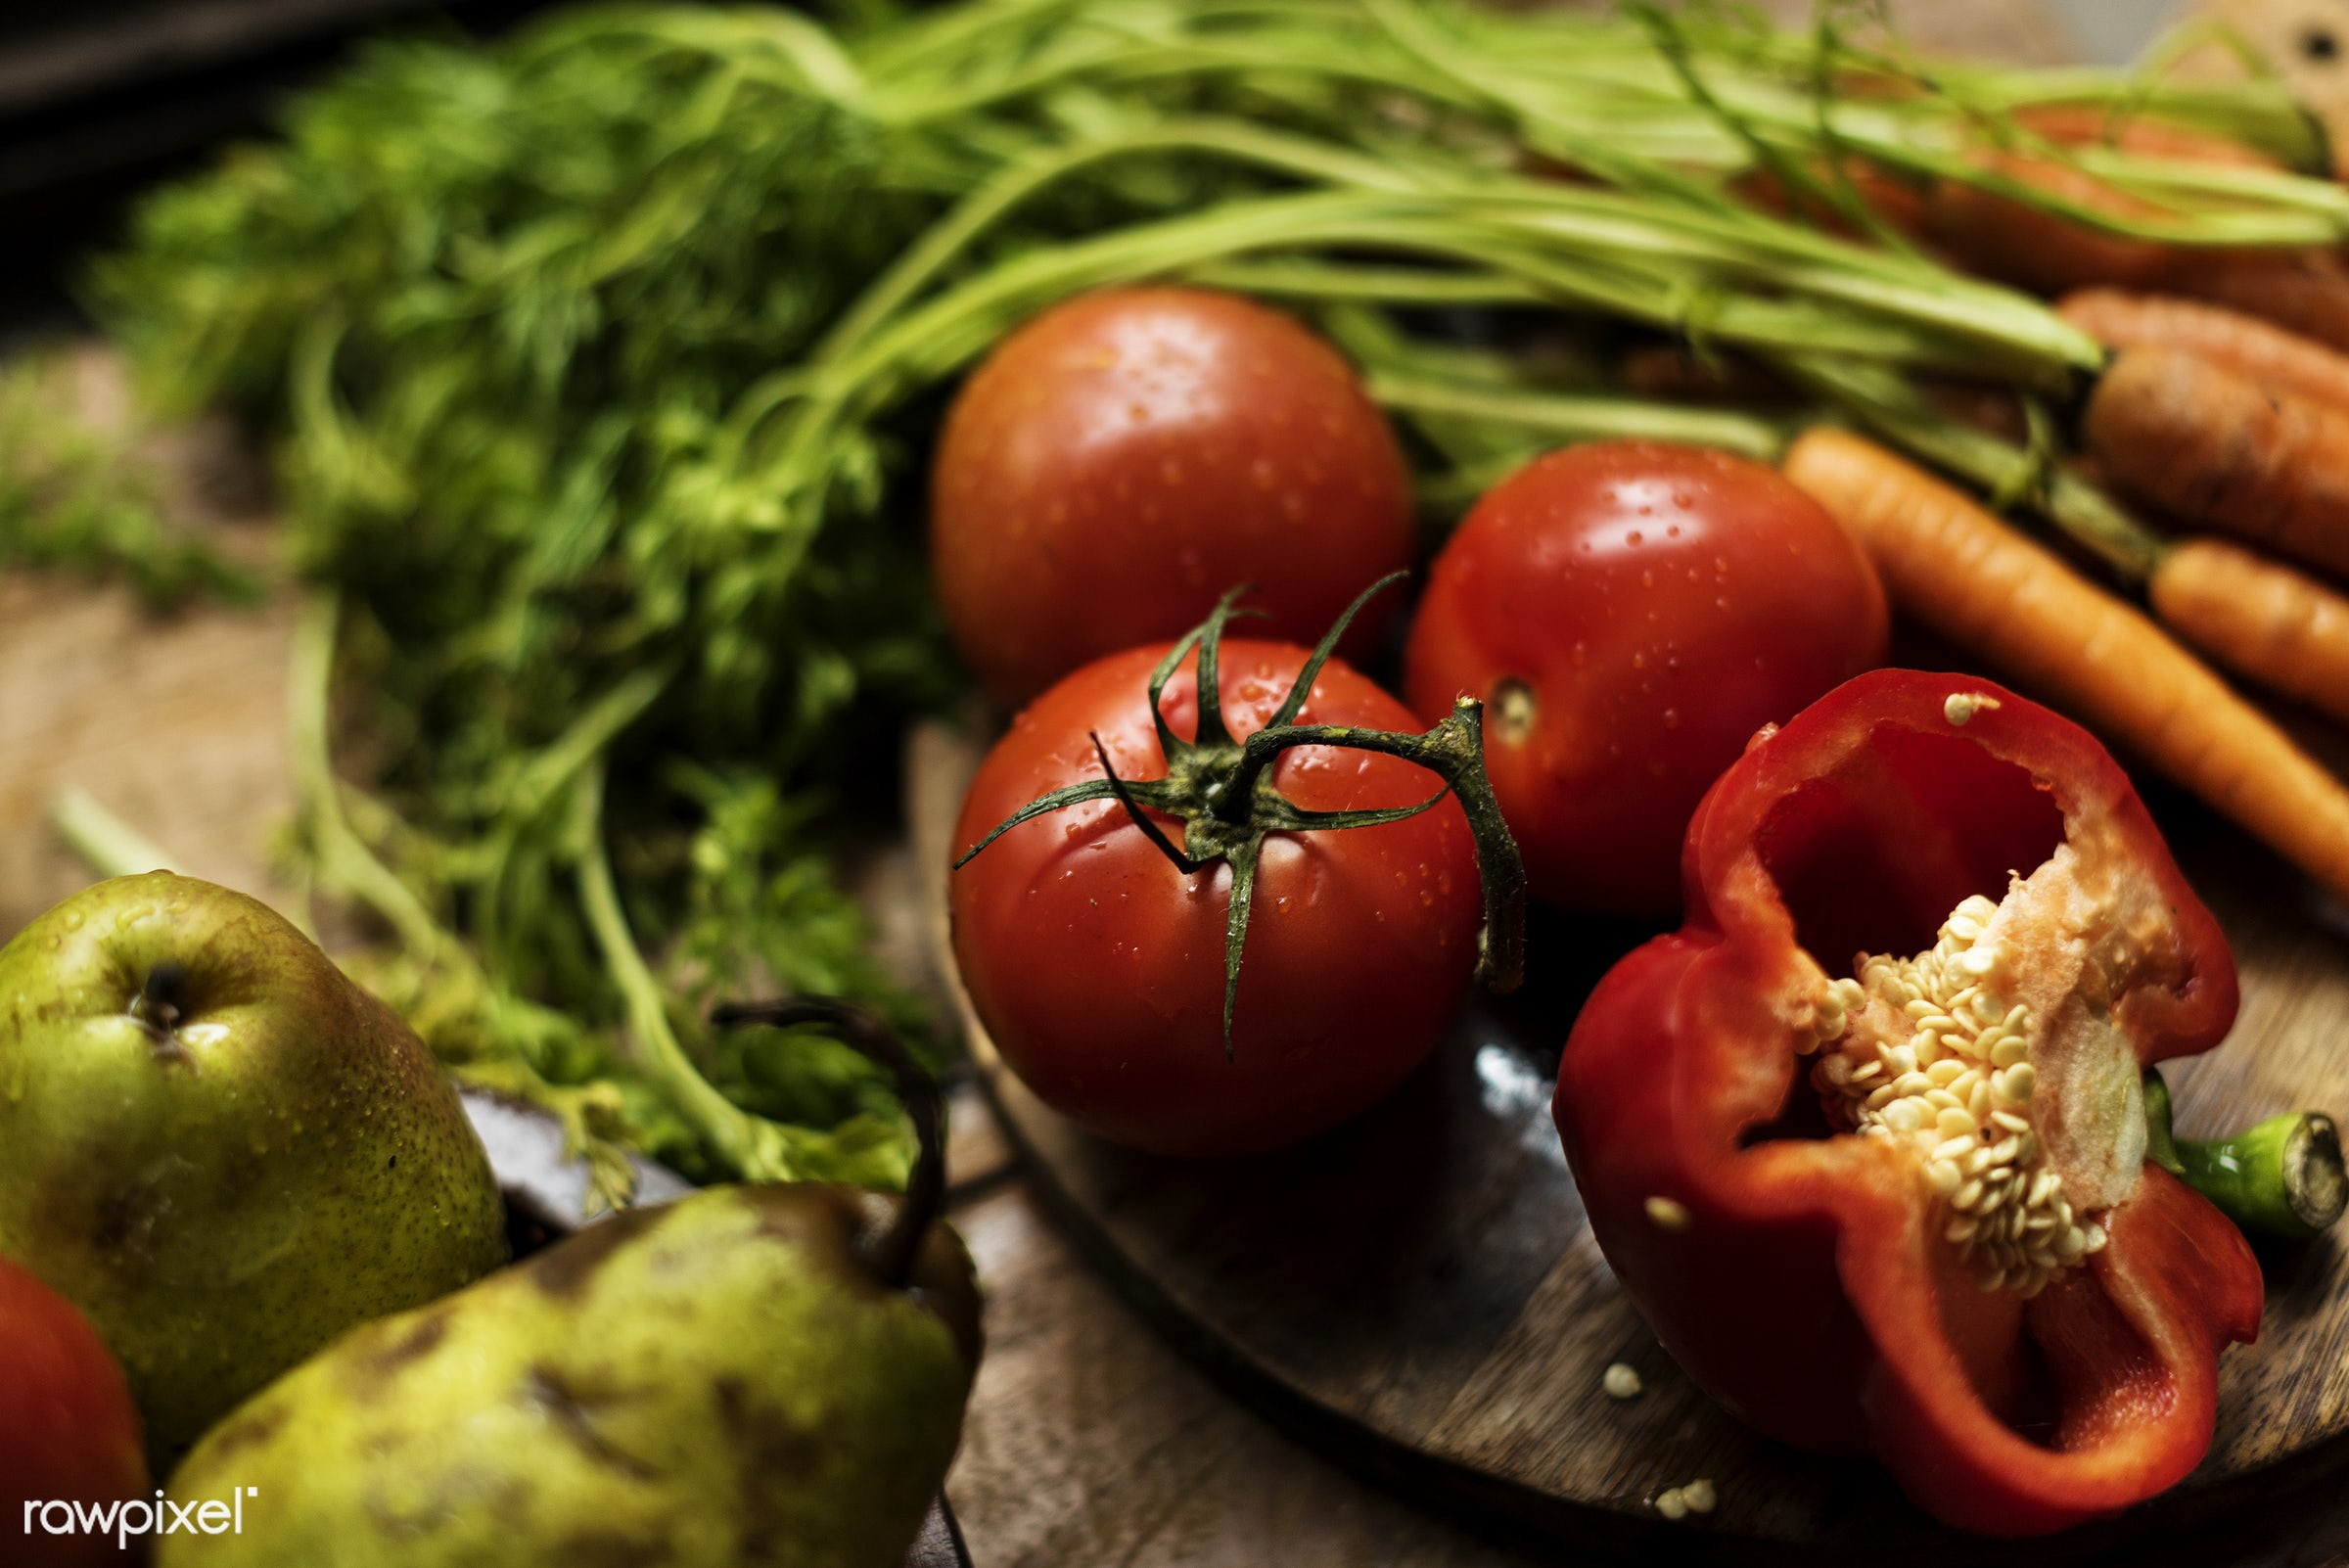 raw, different, tomato, bell pepper, fiber, kind, fresh, ingredient, green, culinary, veggies, variety, edible, nutrition,...